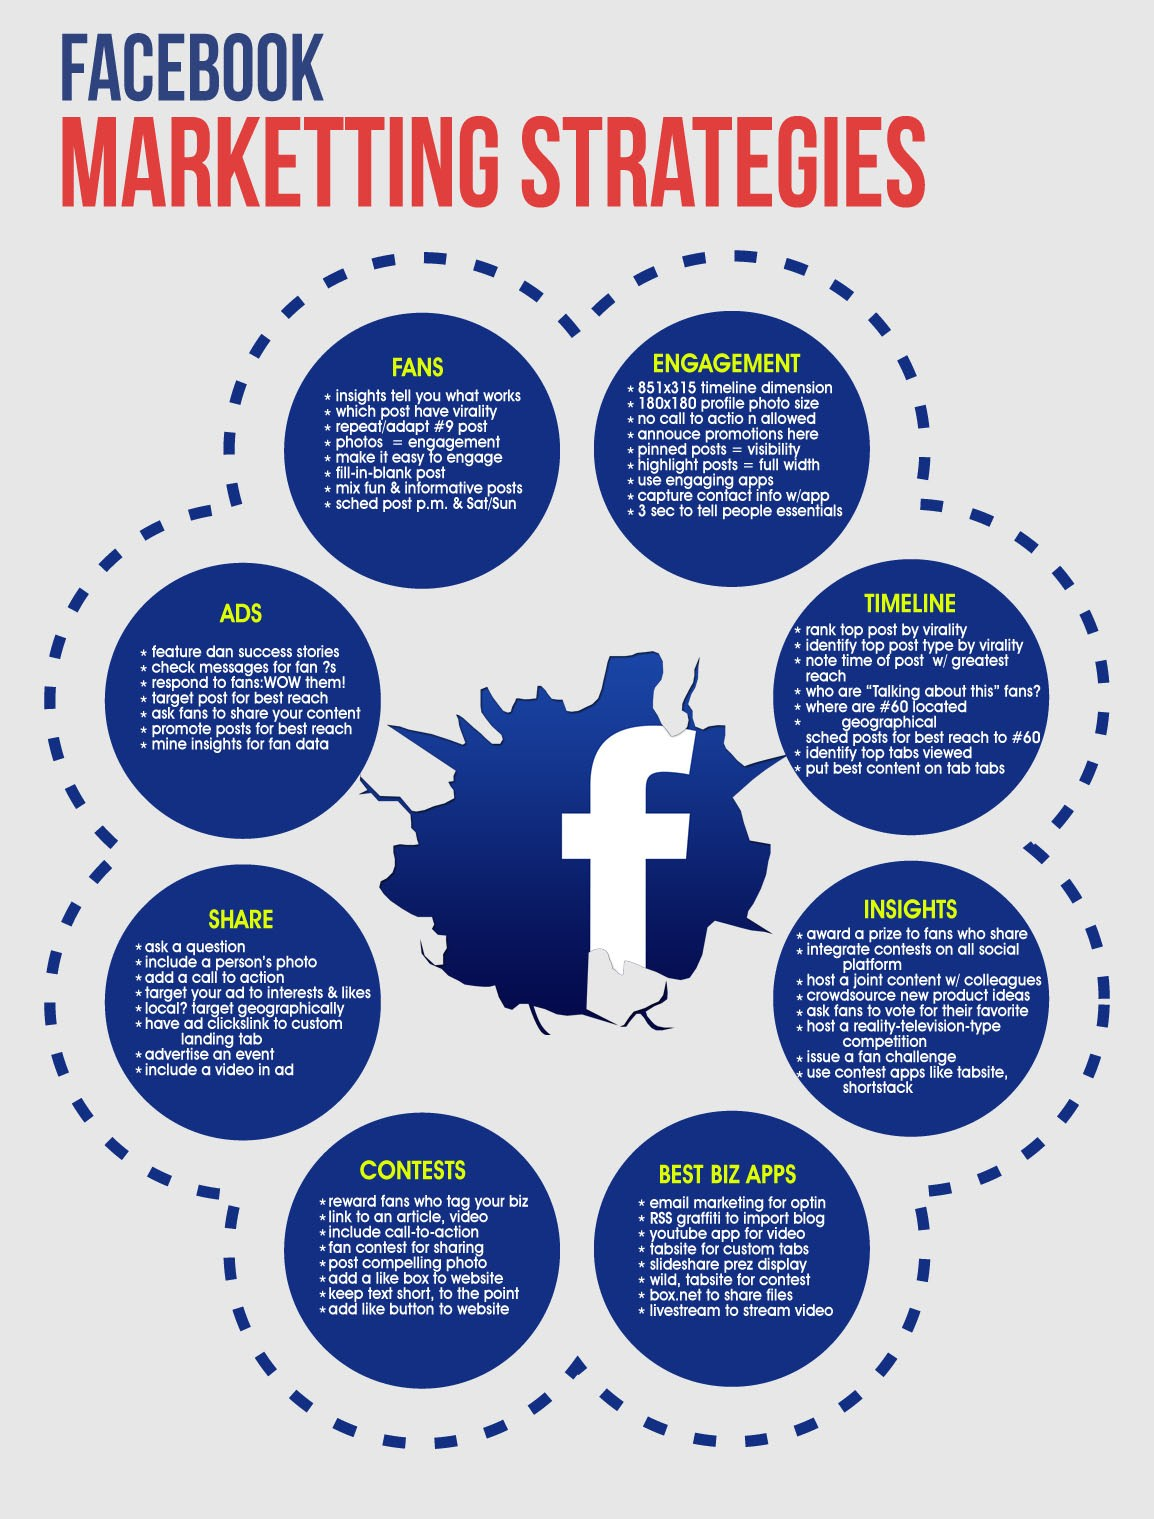 Marketing Strategies On Facebook